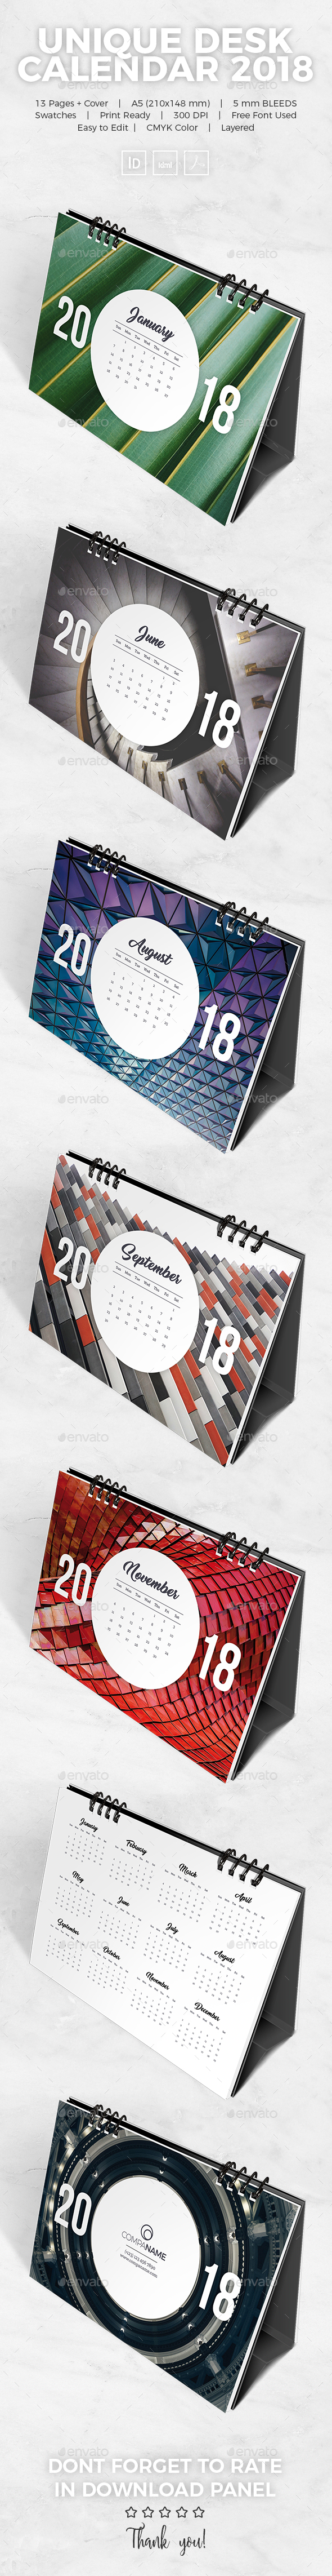 GraphicRiver Unique Desk Calendar 2018 21158306